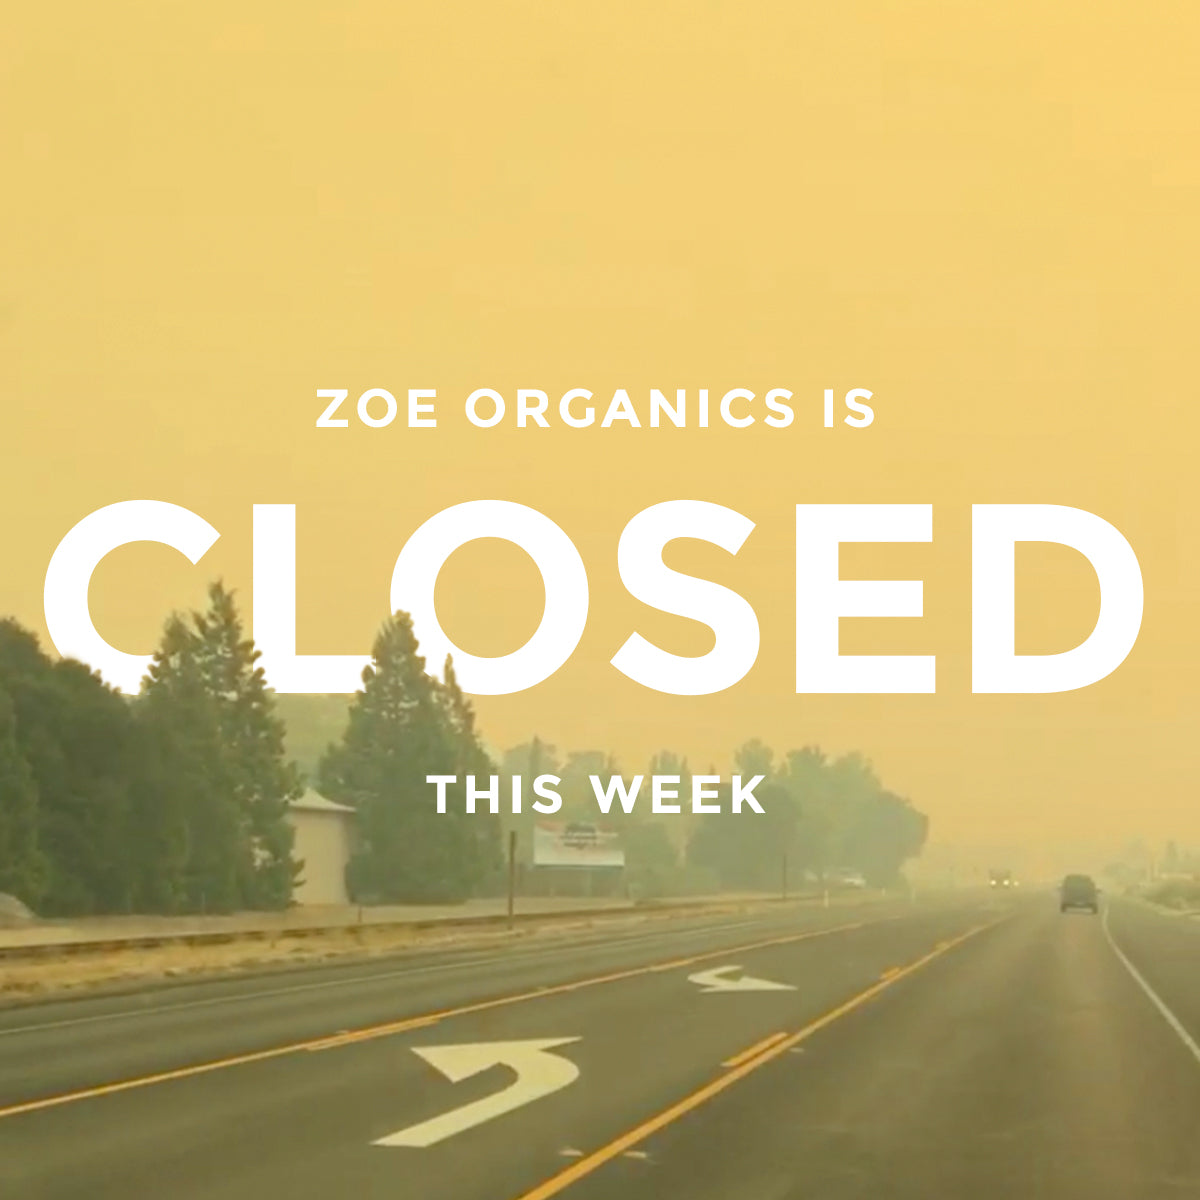 Zoe Organics is Closed